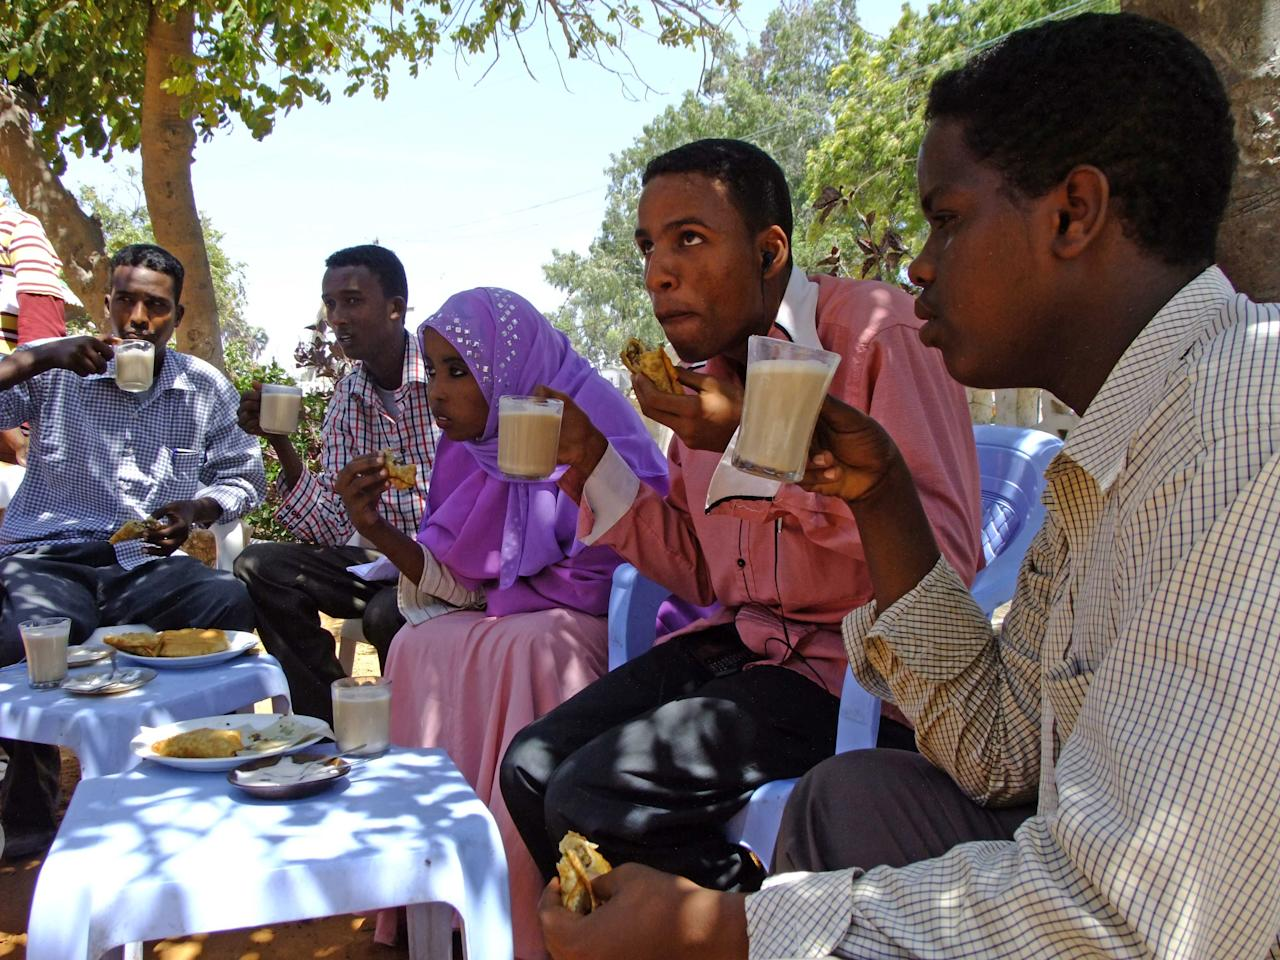 In this photo taken Saturday, March 31, 2012, customers drink coffee at an outdoor cafeteria in Mogadishu, Somalia. The seaside capital of Mogadishu is full of life for the first time in 20 years after African Union and Somali troops pushed Islamist militants out of the city last year. (AP Photo/Farah Abdi Warsameh)